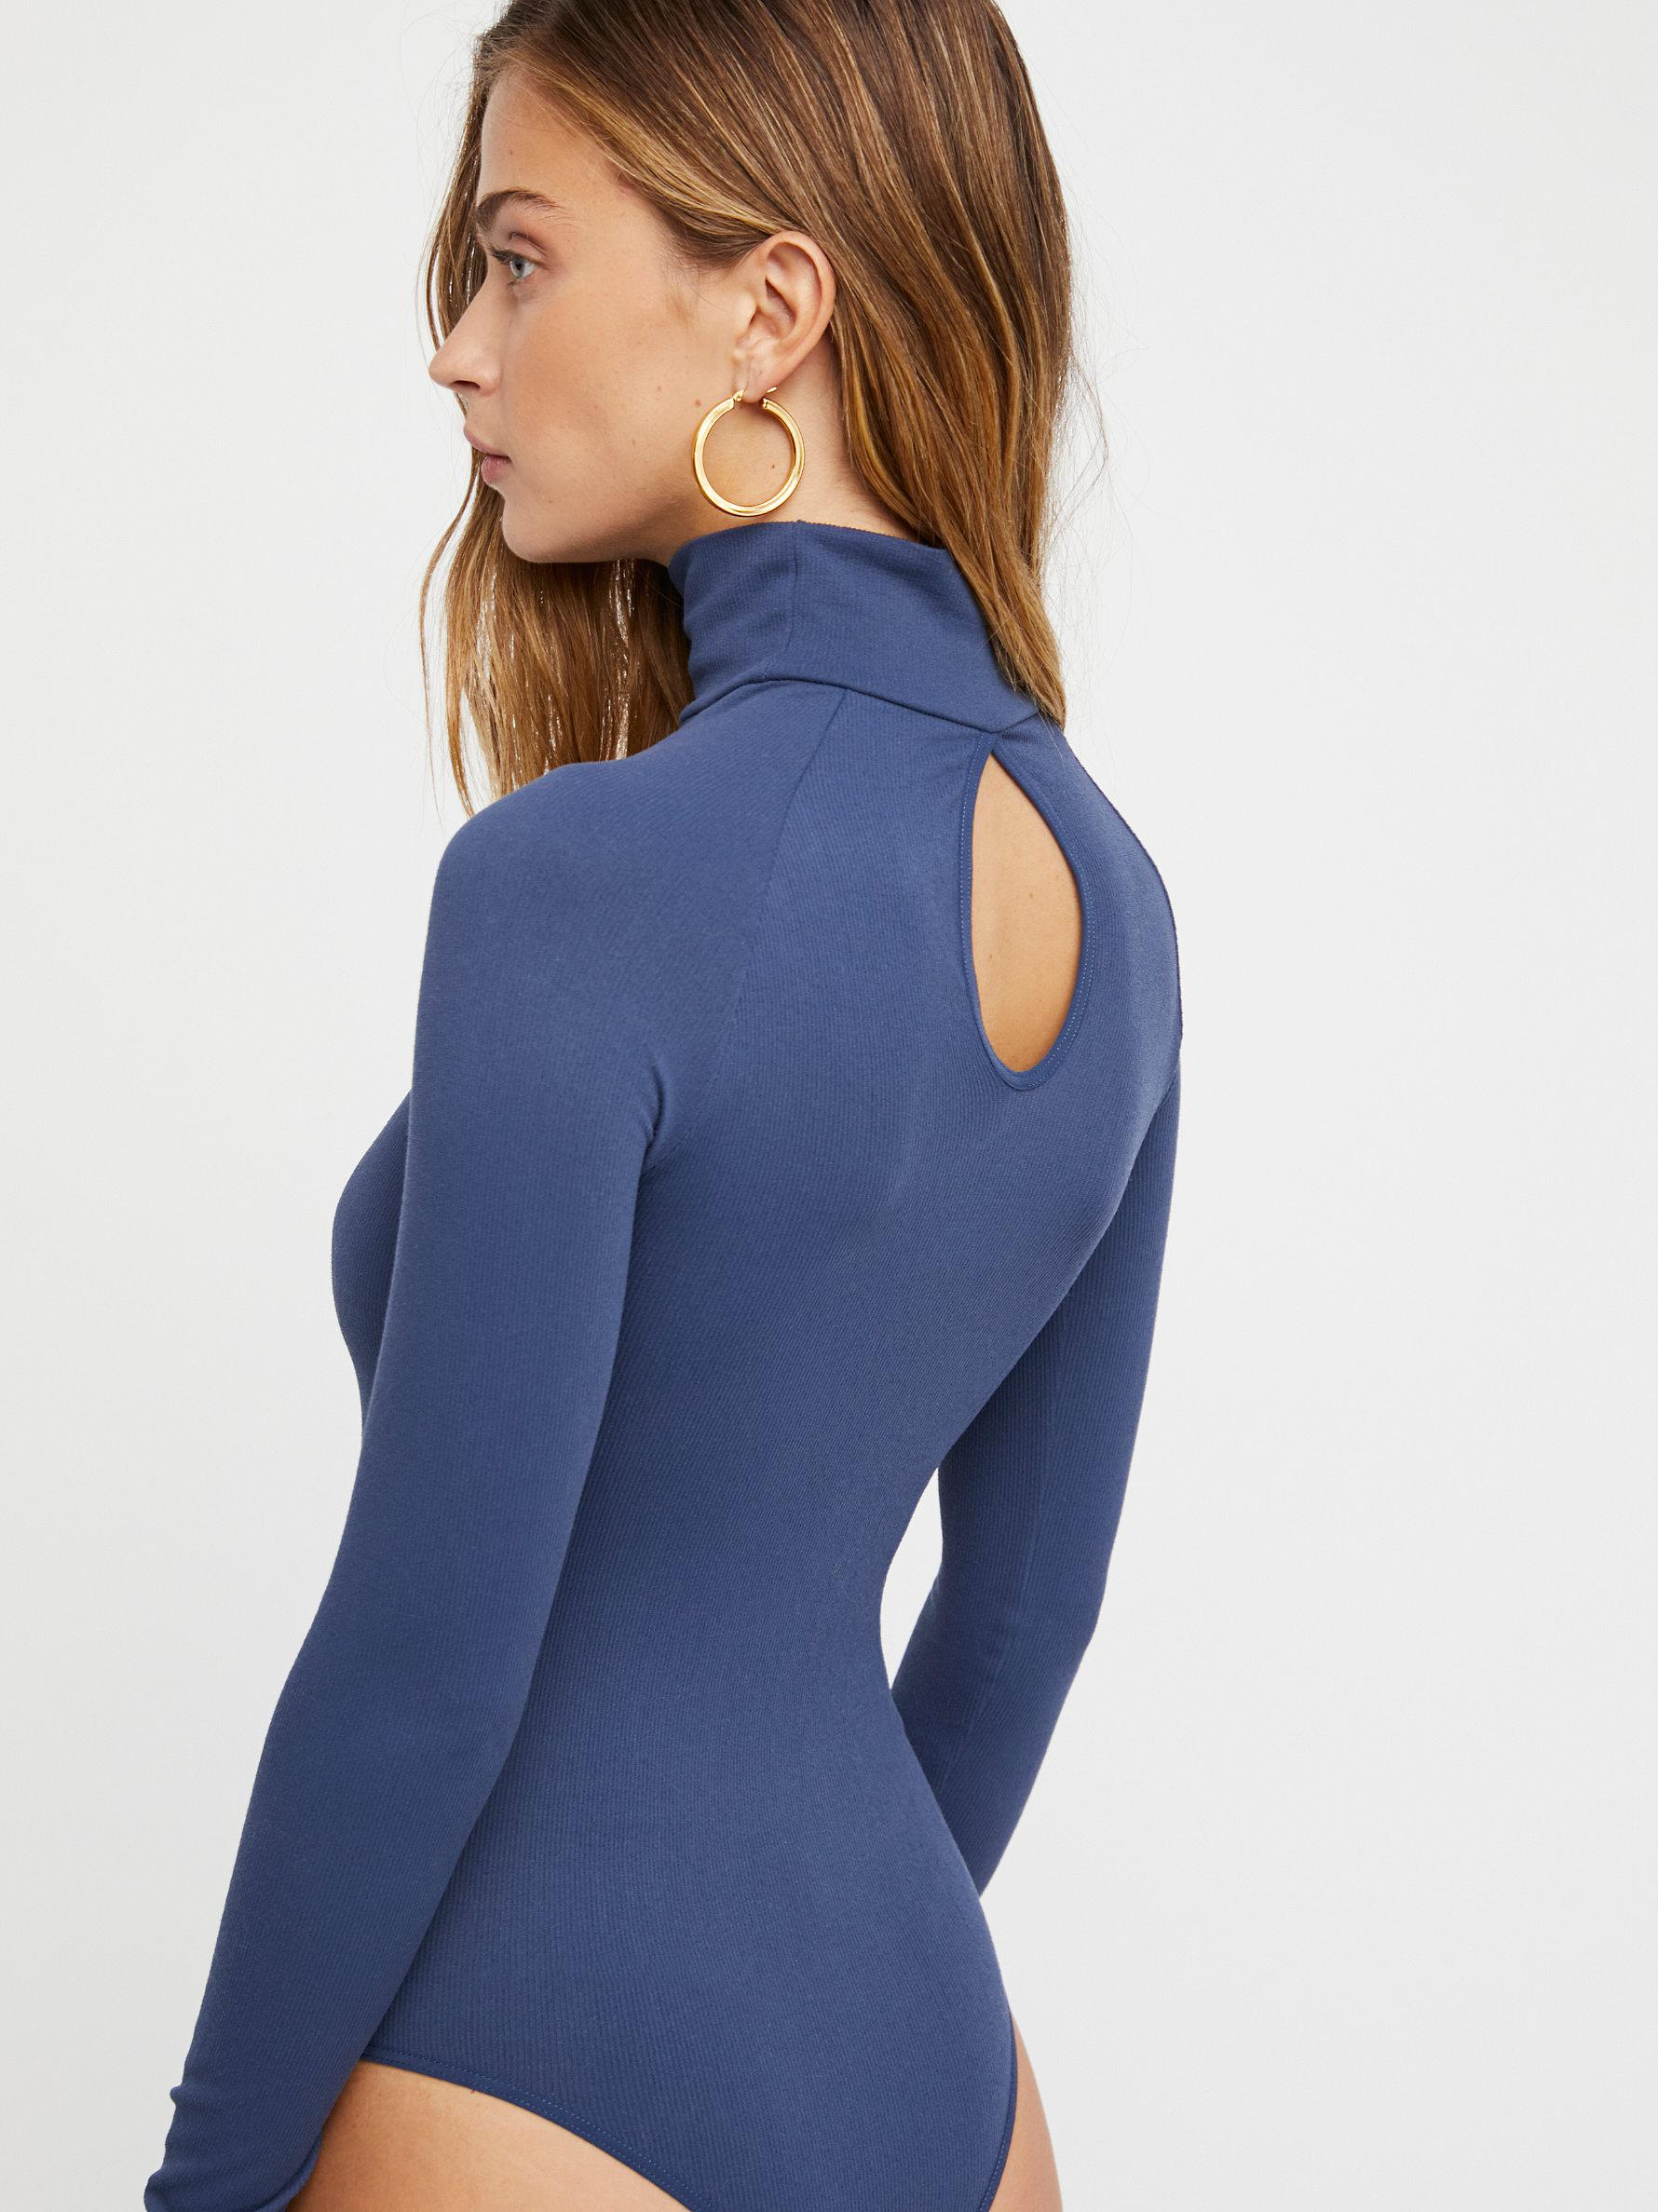 New-Free-People-Womens-Ribbed-Long-Sleeve-Seamless-Turtleneck-Bodysuit-Top-48 thumbnail 52